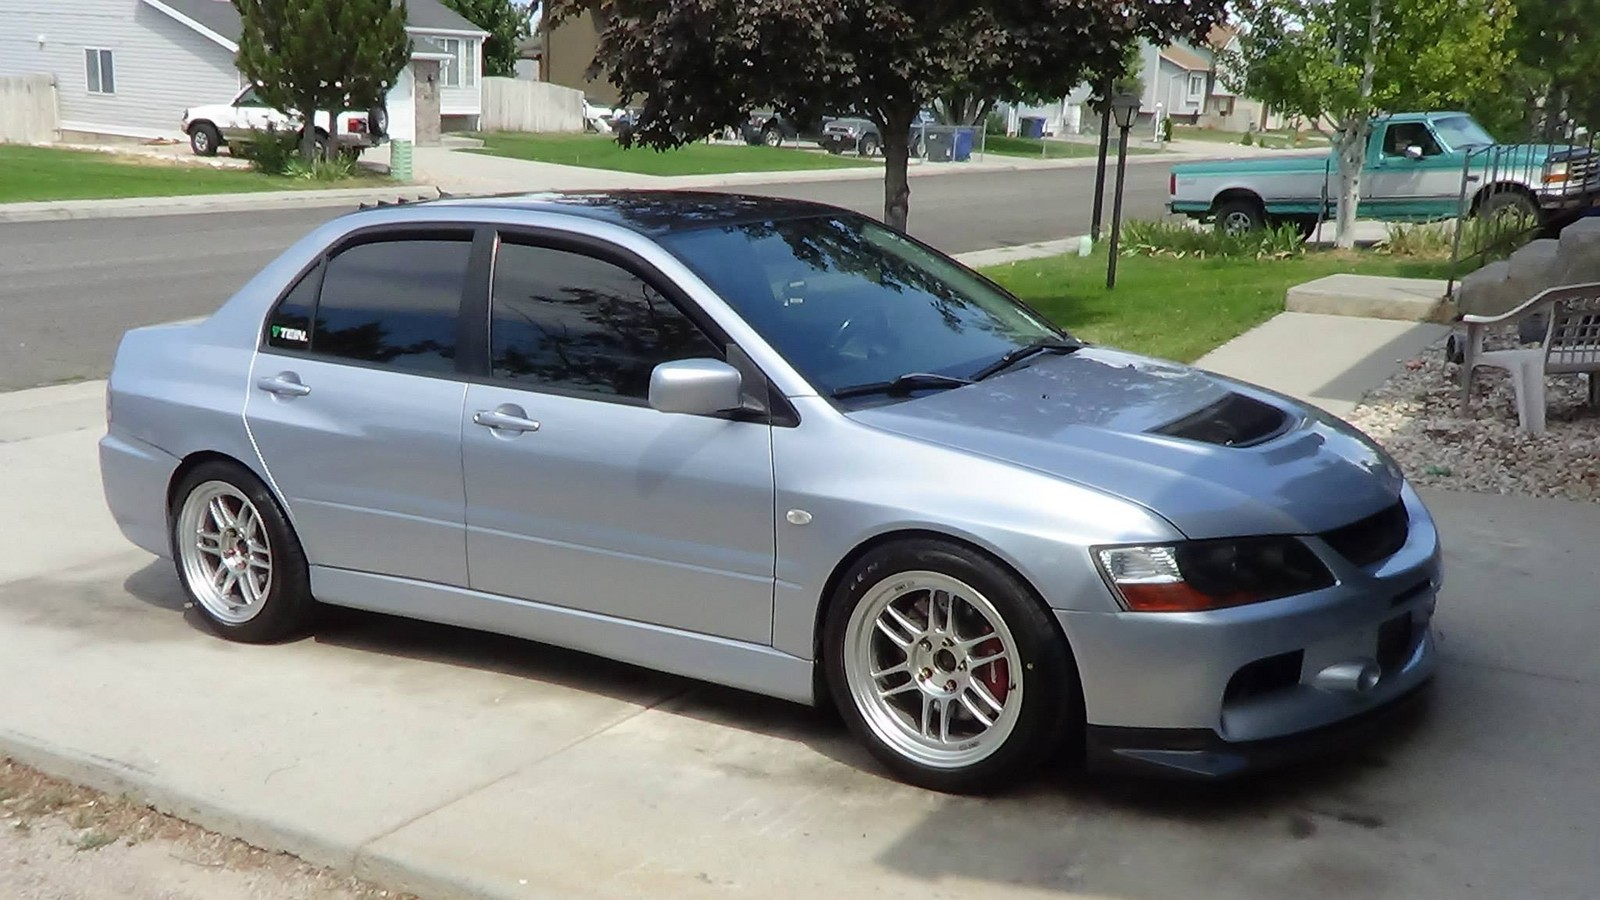 2005 Apex Silver Mitsubishi Lancer EVO GSR picture, mods, upgrades